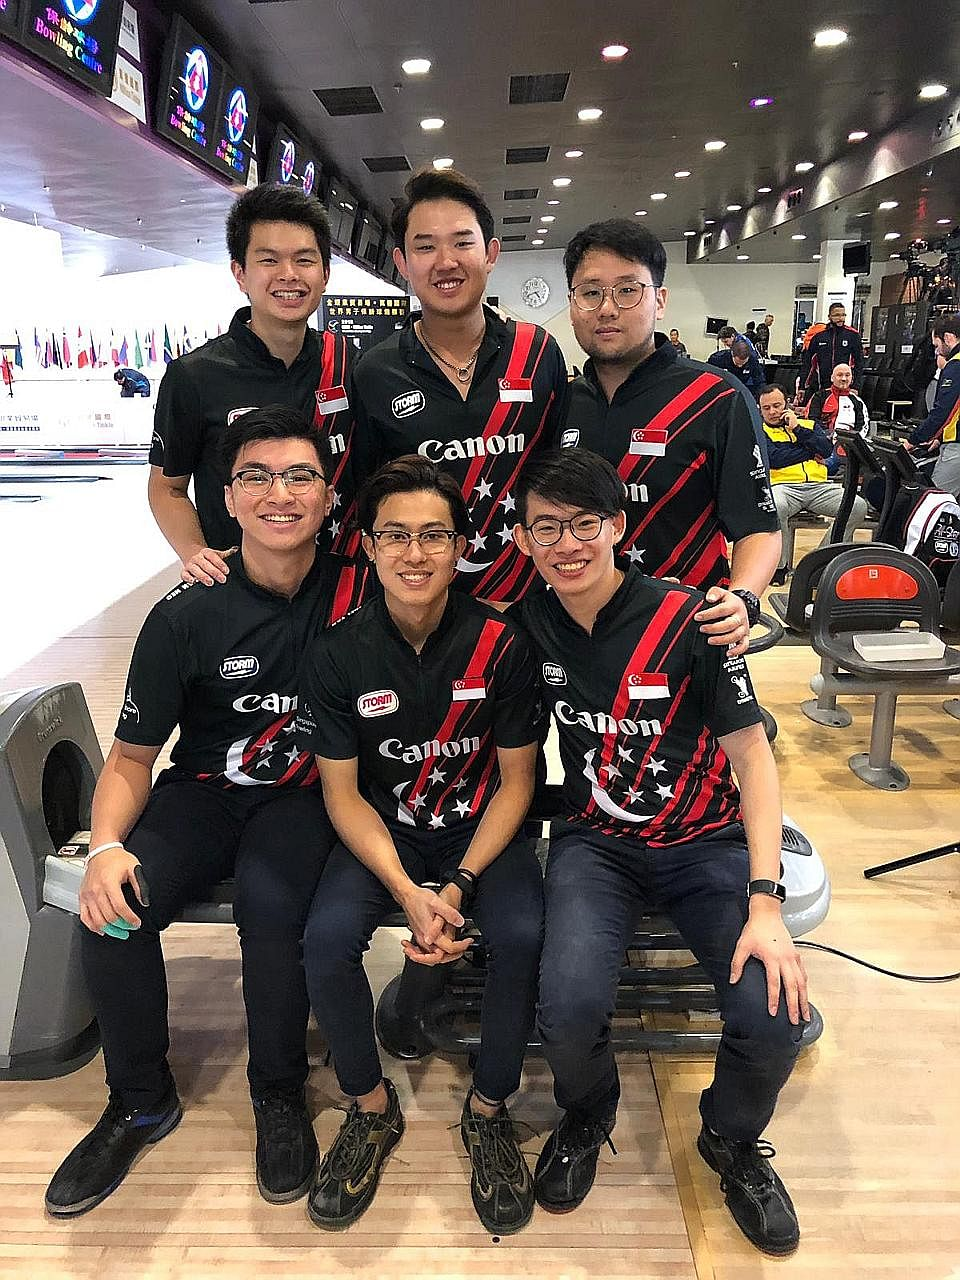 Singapore's Darren Ong, seen here in action at the Asian Games trios competition earlier this year, was one of just two athletes to bowl more than 200 pinfalls in all six games in the World Bowling Men's Championships team-of-five event yester